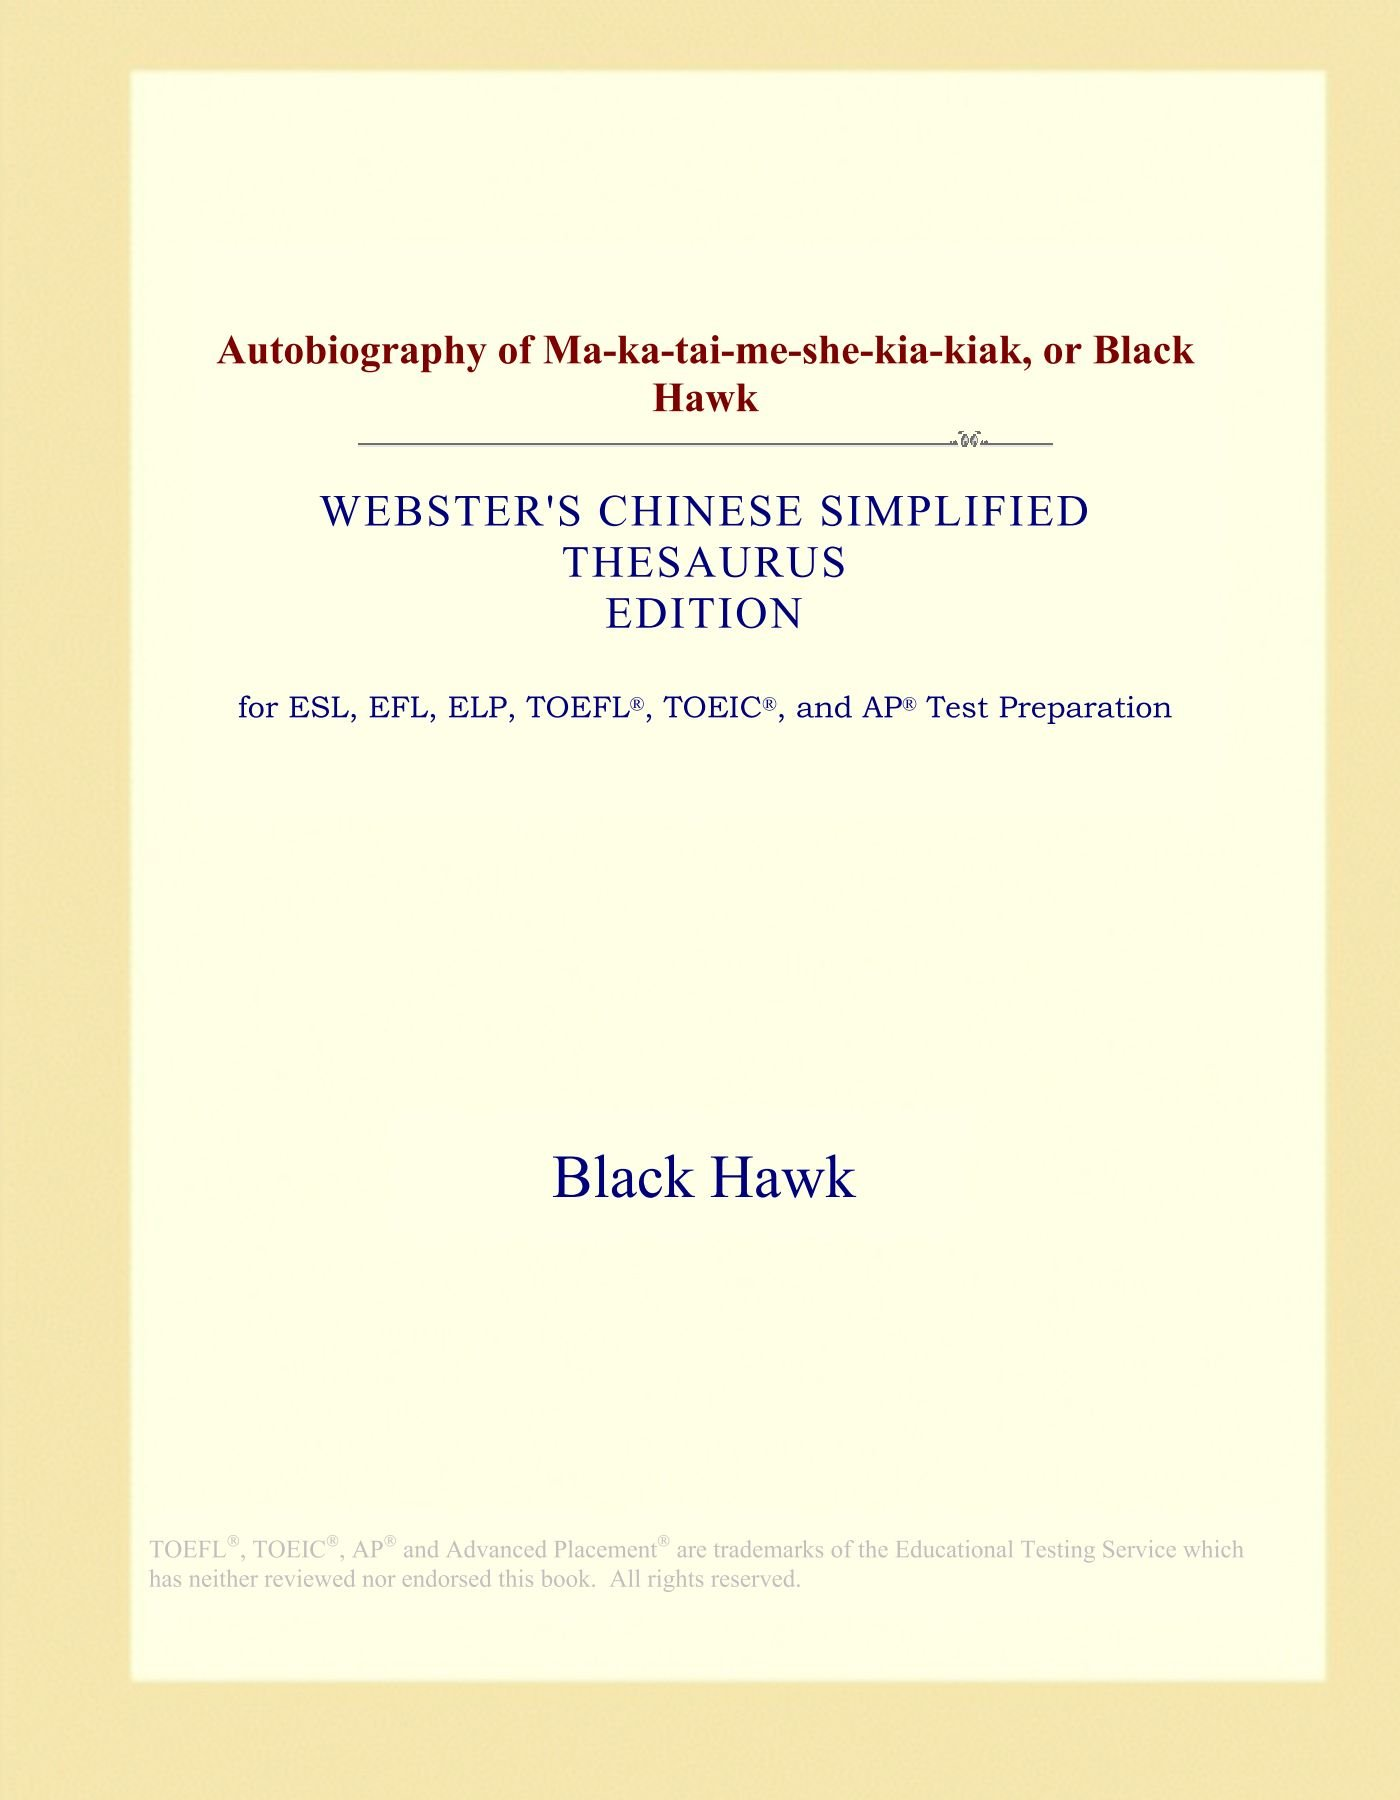 Autobiography of Ma-ka-tai-me-she-kia-kiak, or Black Hawk (Webster's Chinese Simplified Thesaurus Edition) ebook